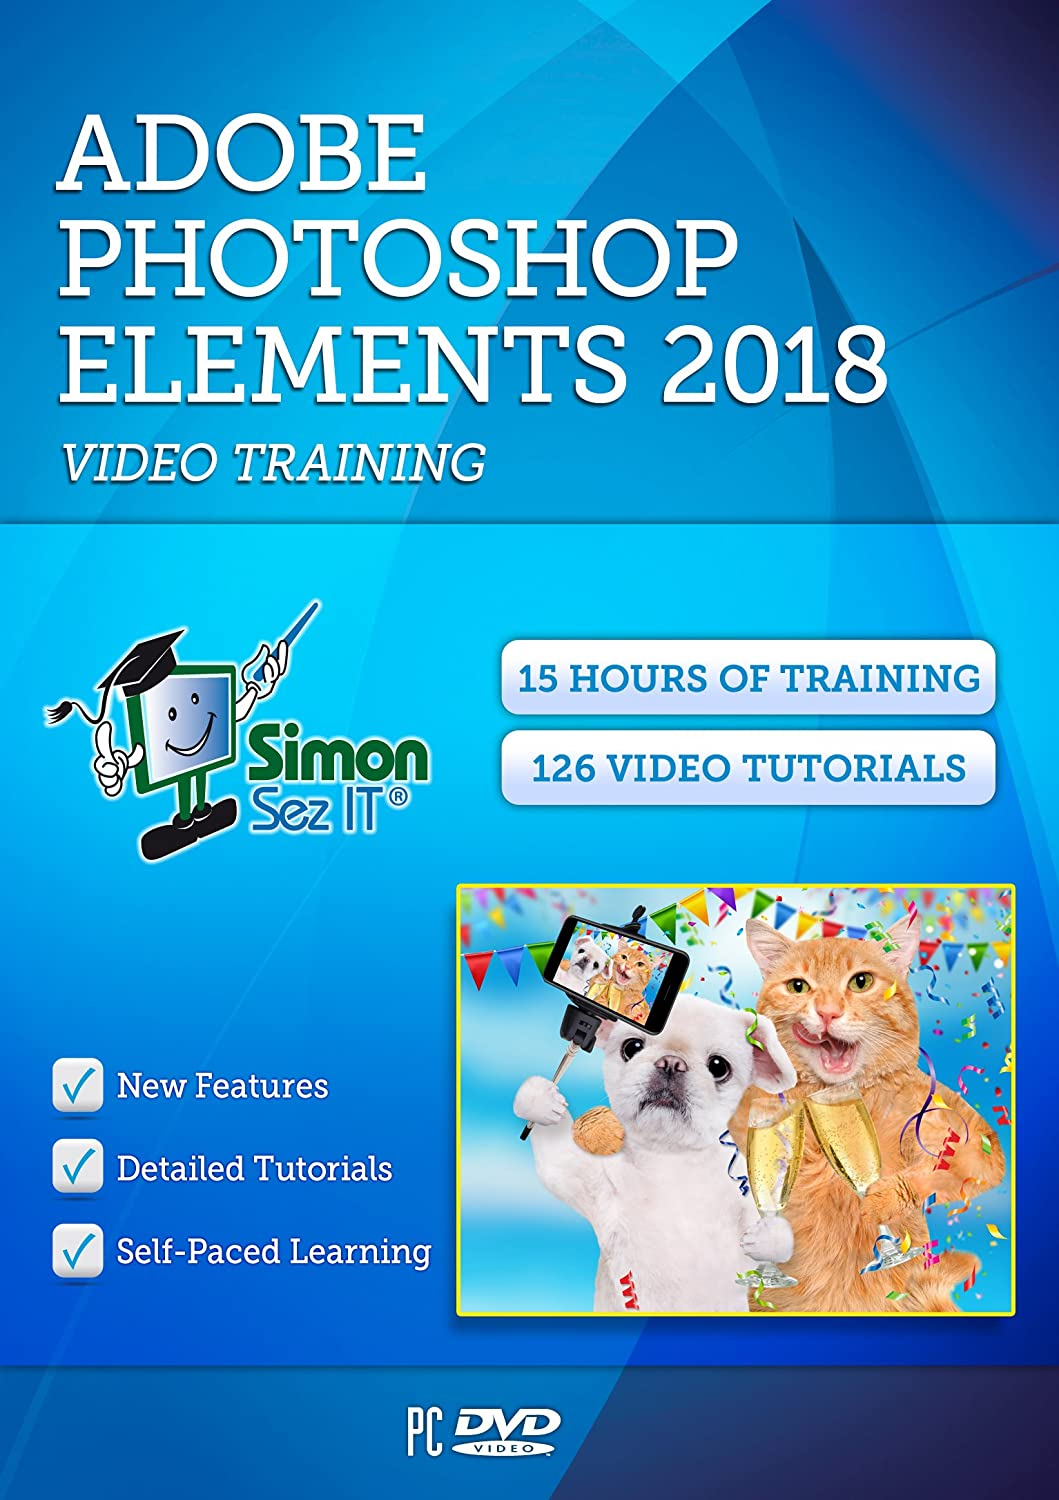 Adobe Photoshop Elements 2018 Self-Paced DVD Training Course By Simon Sez IT | Perfect Images & Pictures With A 15-Hour, Comprehensive & Easy To Follow Course